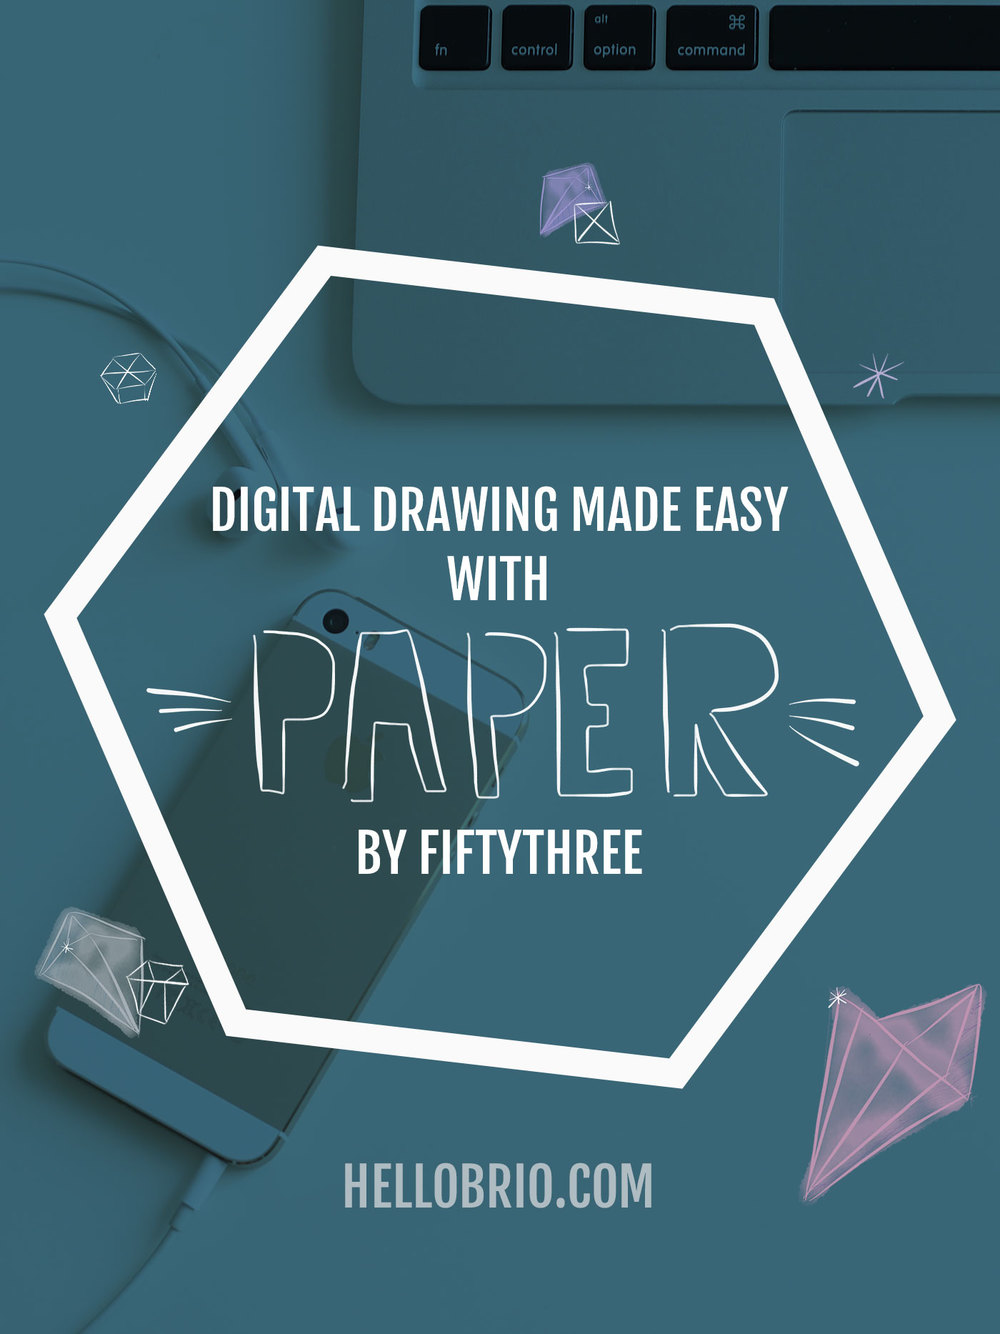 Digital drawing made easy with your iPhone or iPad and the free app, Paper by FiftyThree